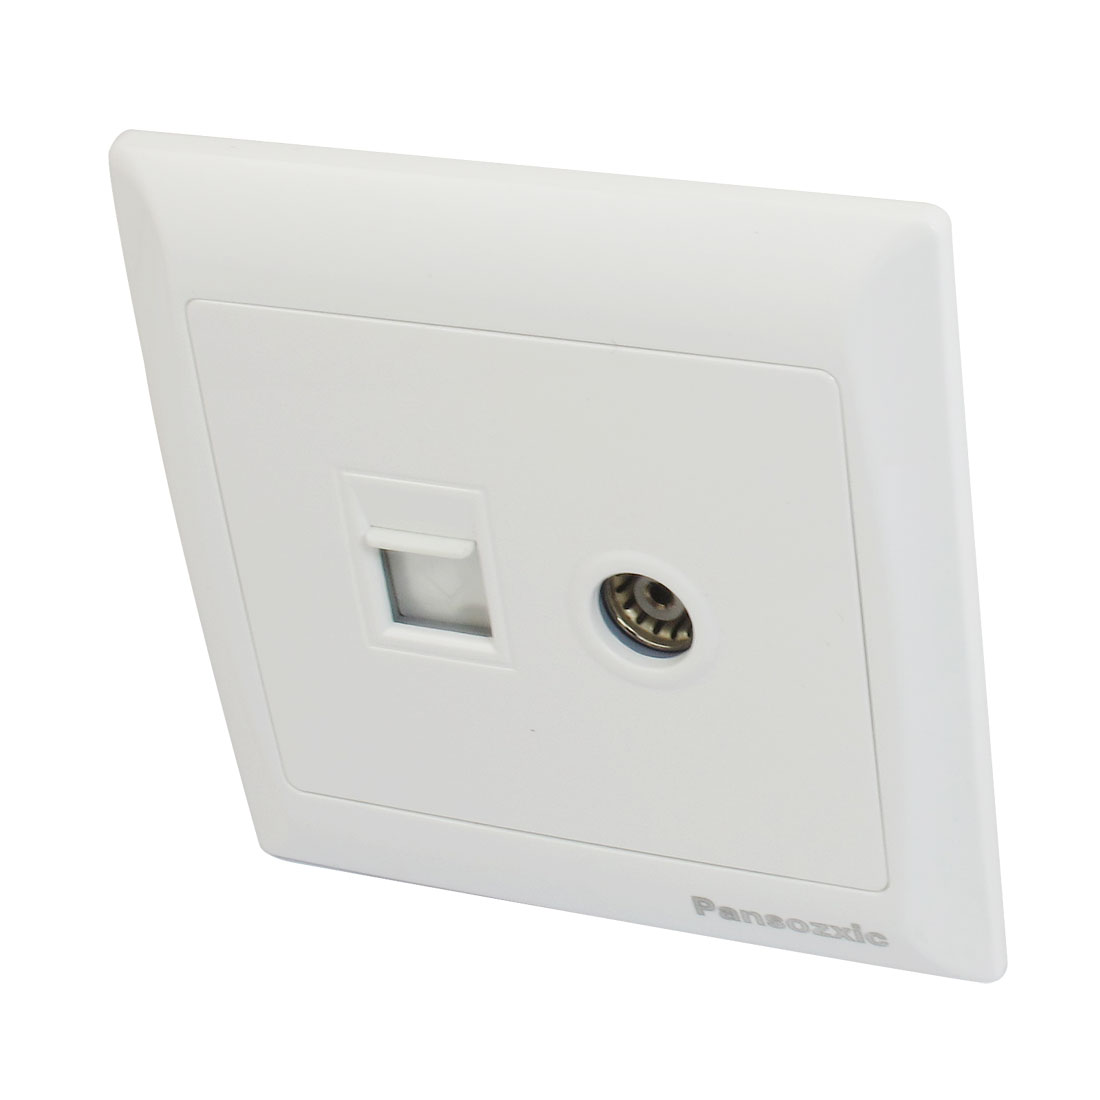 White Rectangle Panel RJ45 Computer RJ11 Telephone Network Wall Outlet Plate